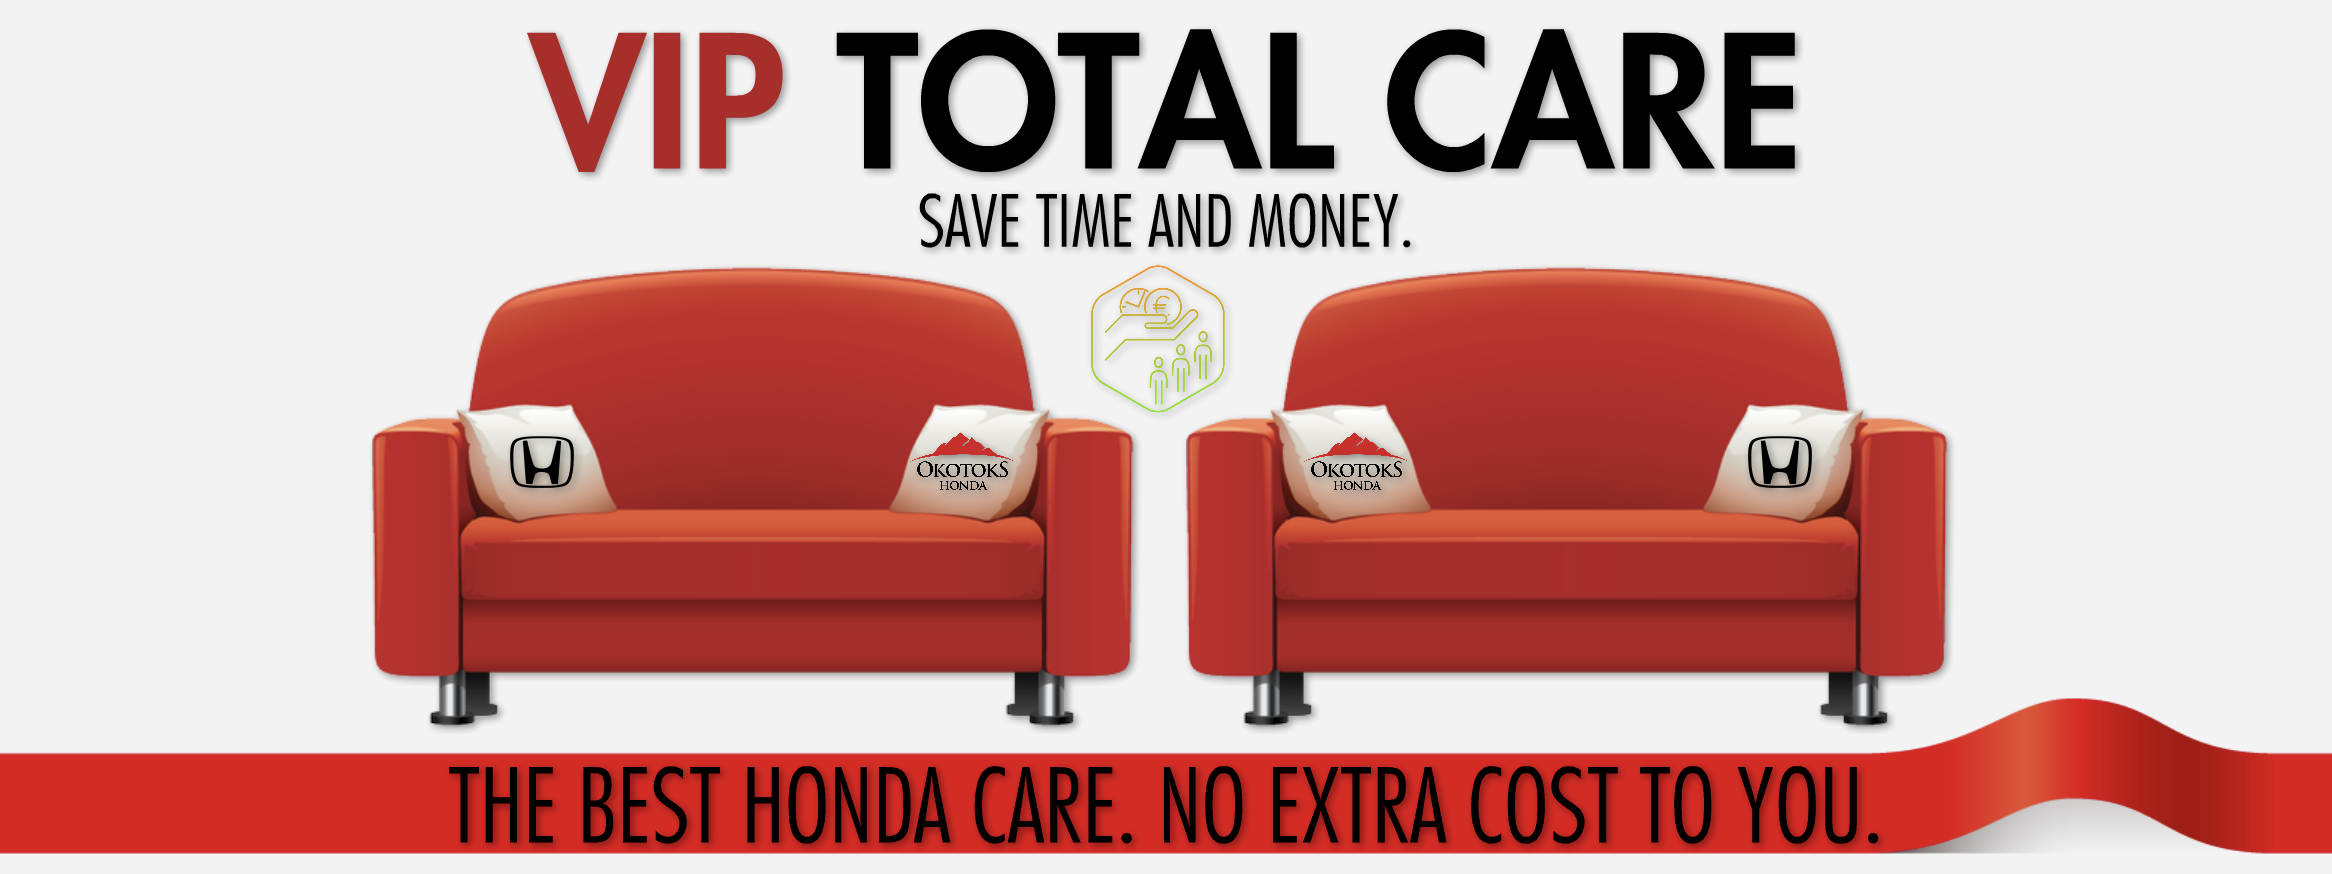 VIP Total Care at Okotoks Honda, South Calgary